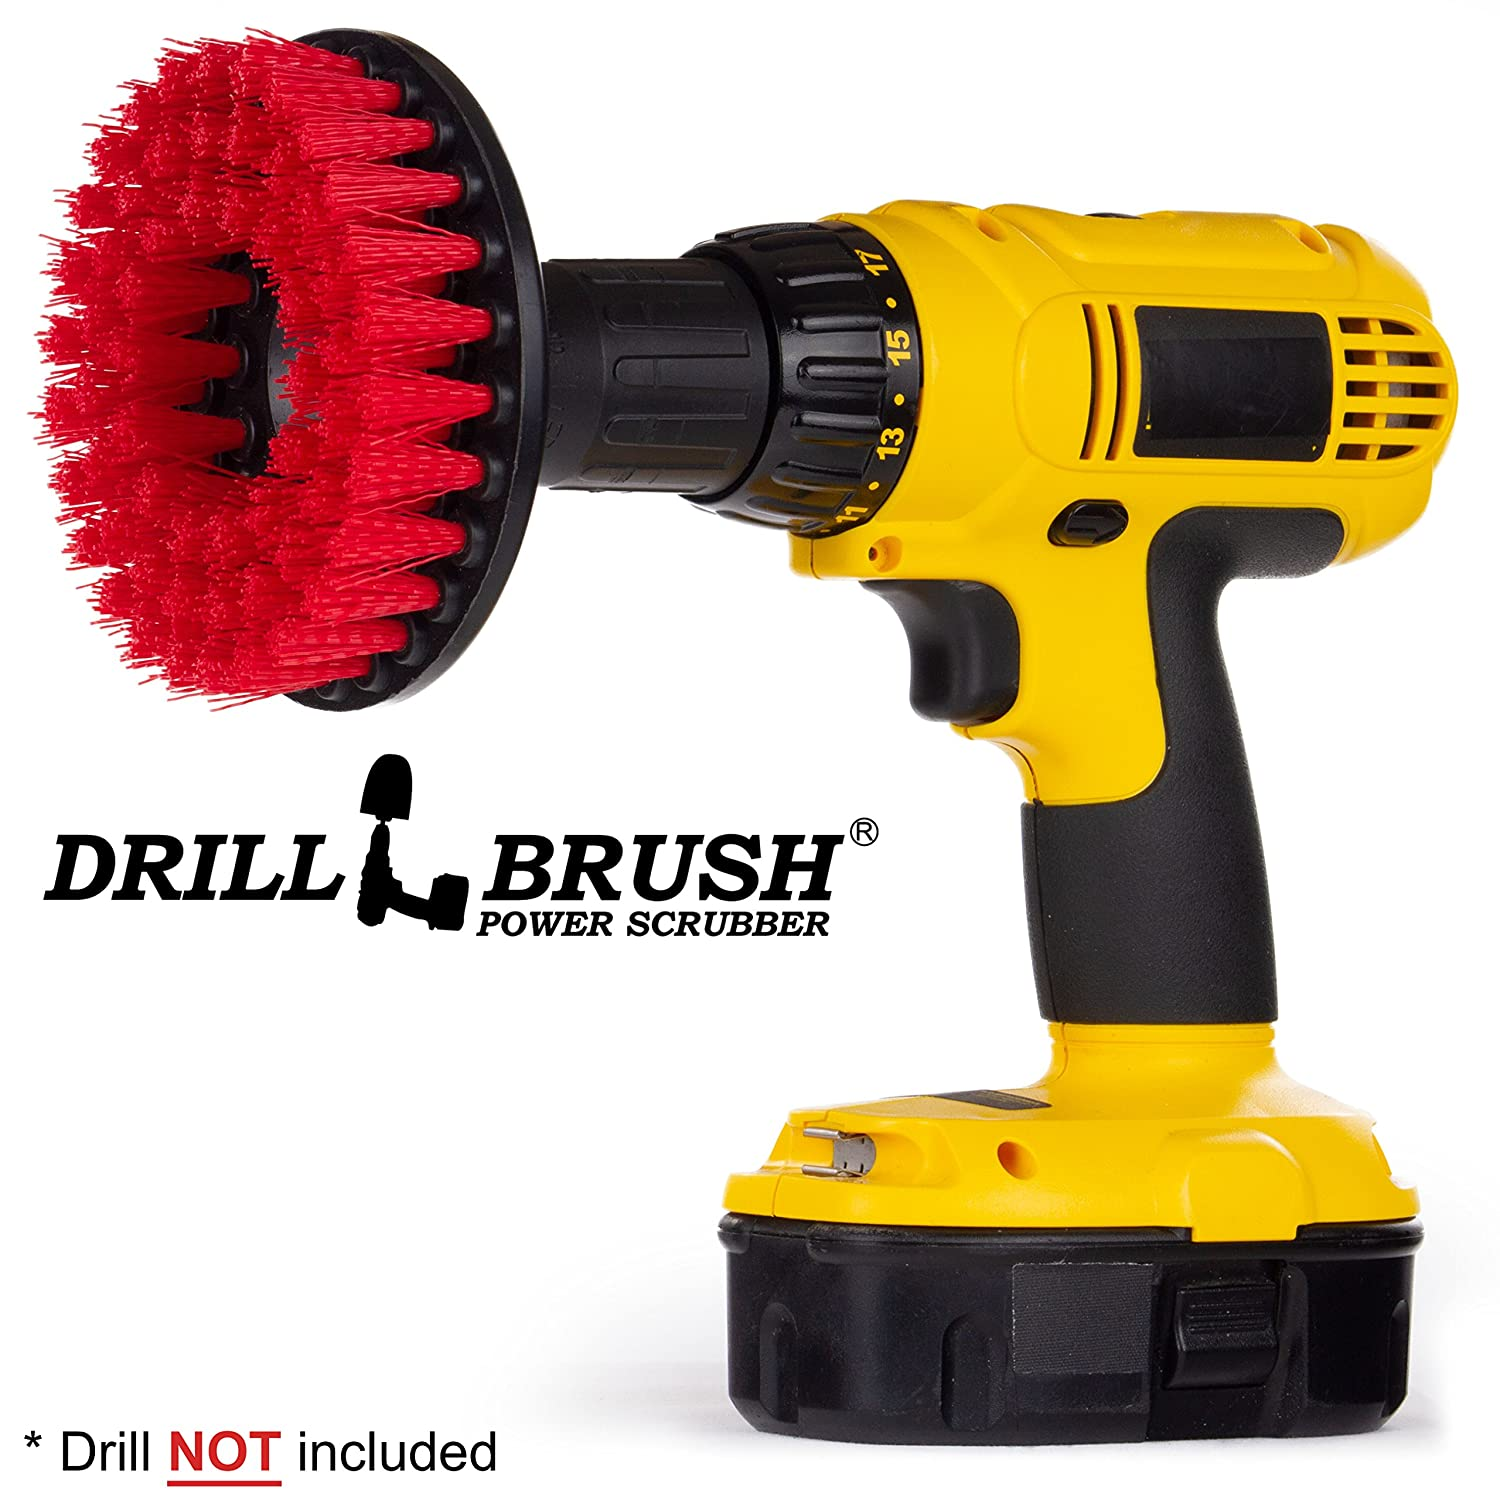 Red Drill Brush Heavy Duty Cleaning Brush with Stiff Bristles by Drillbrush 5in-Ch-Red-0658